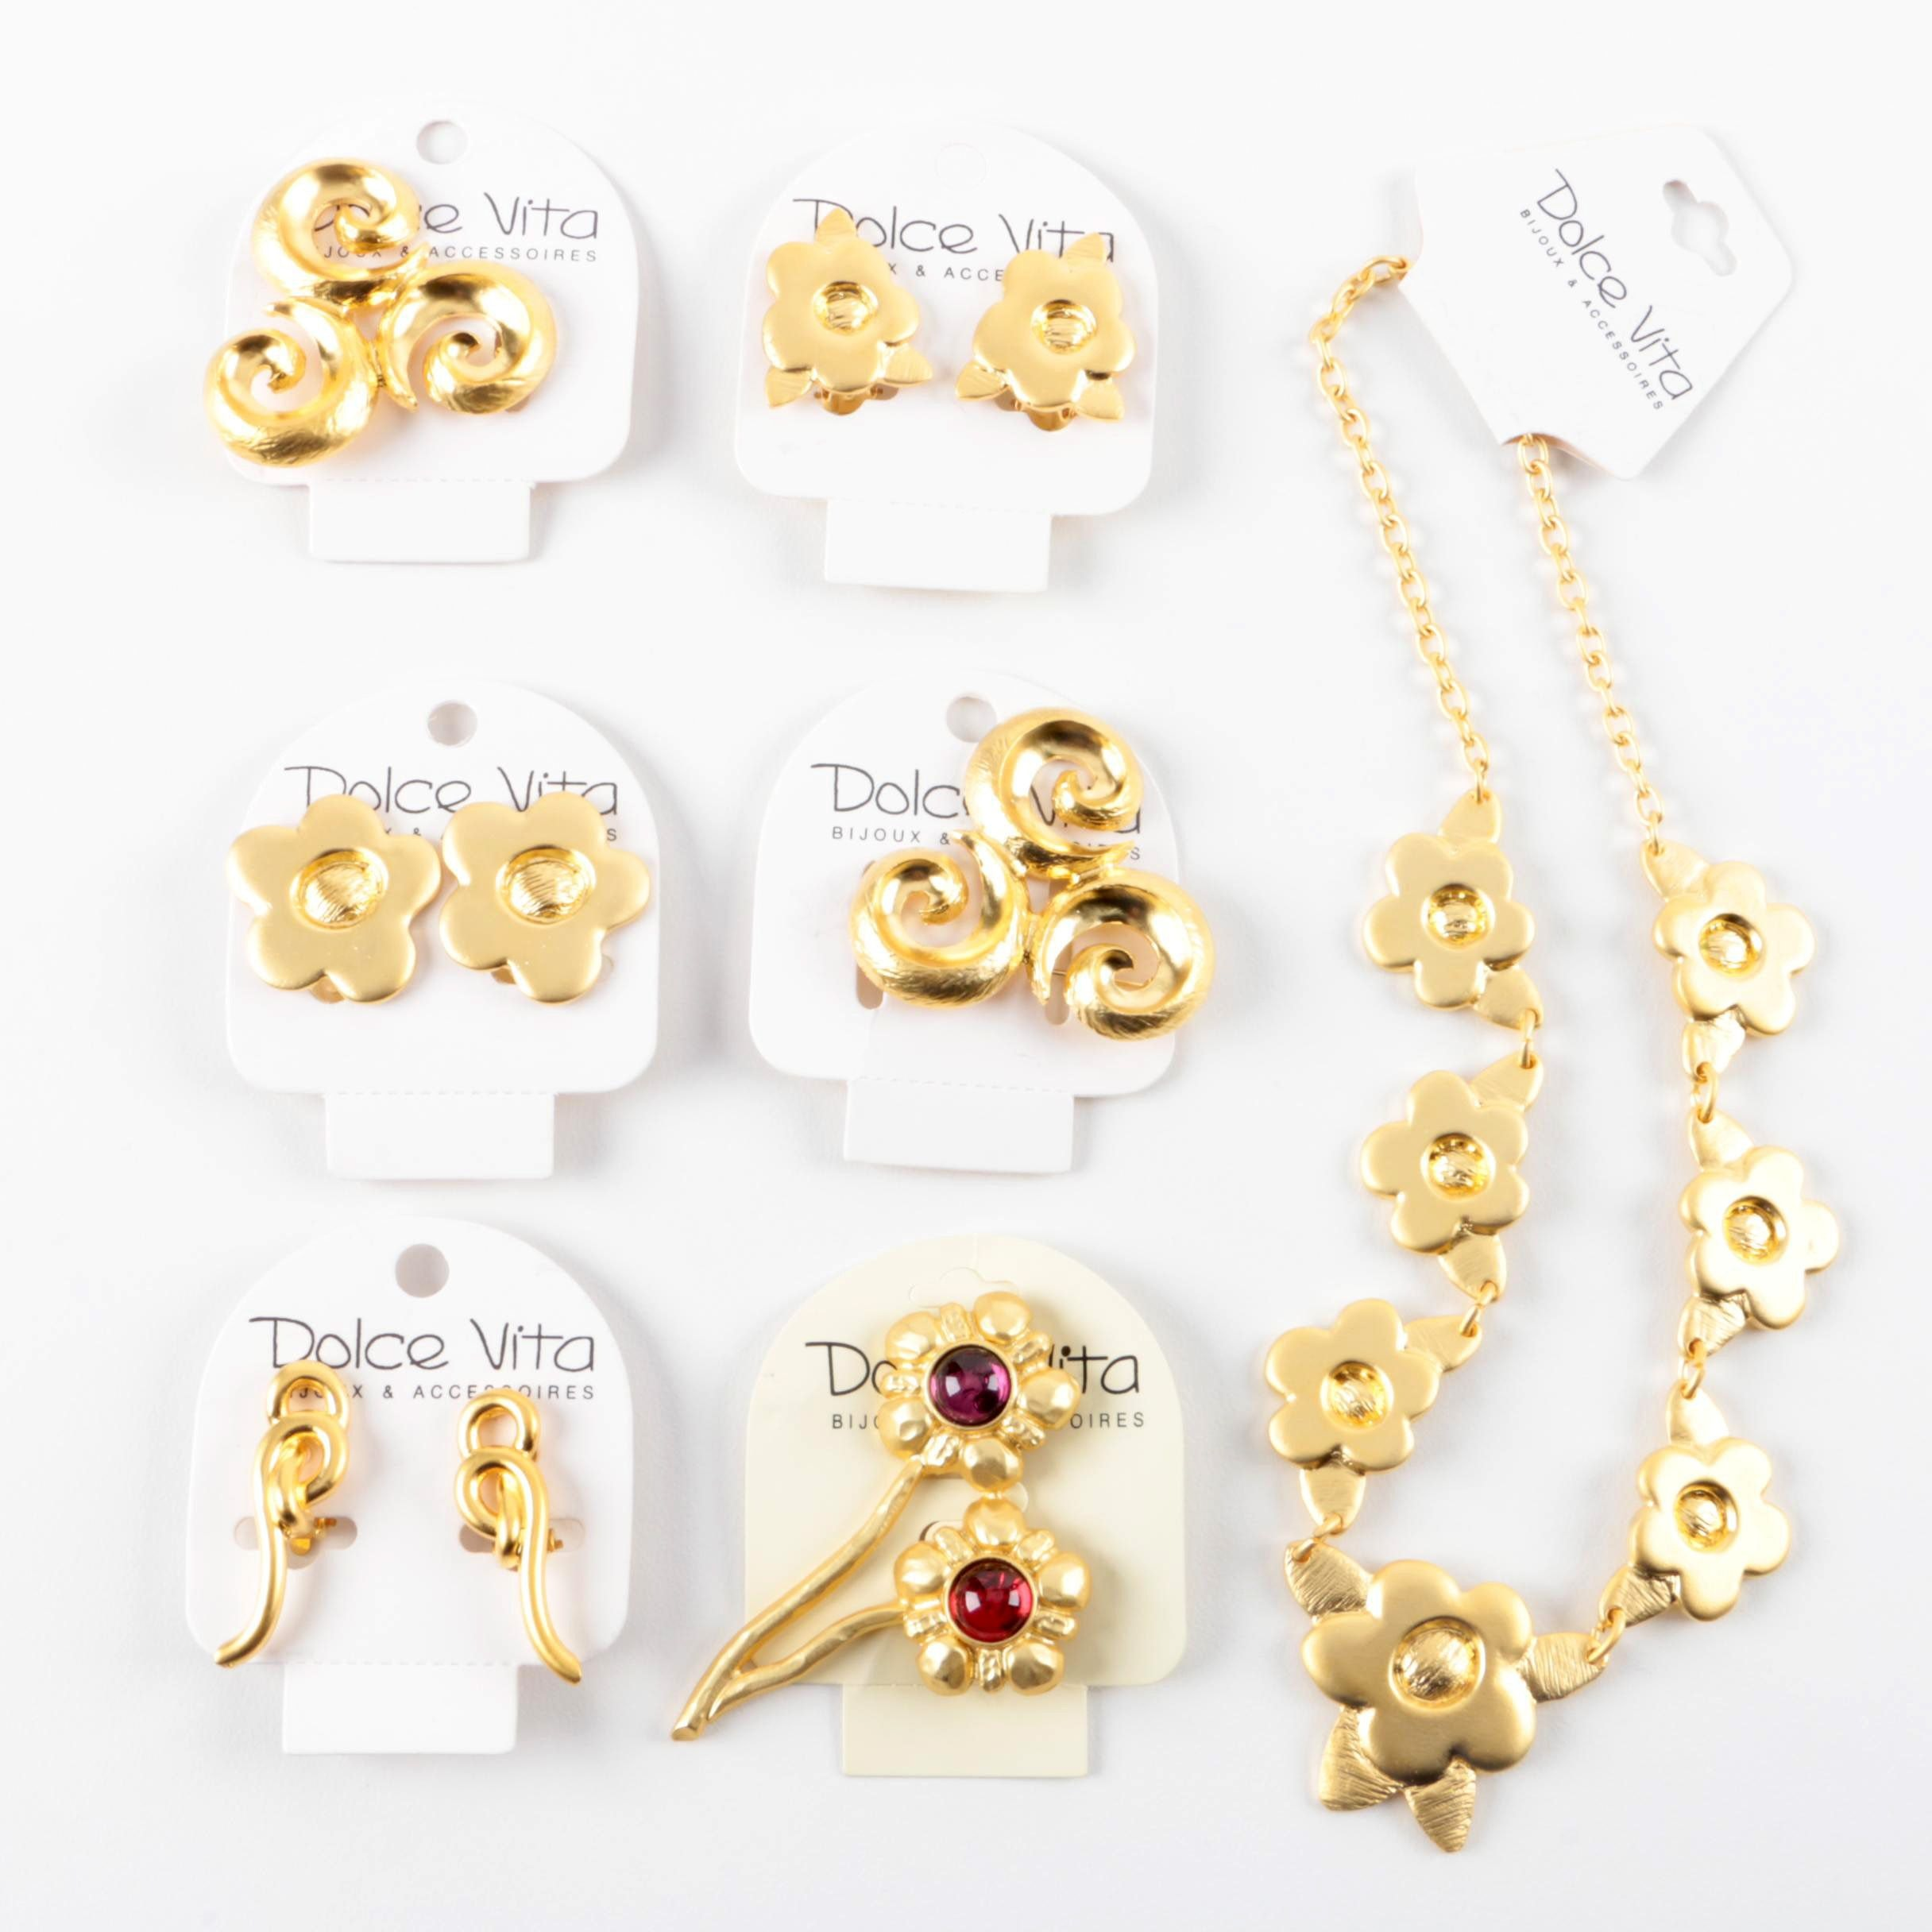 Assortment of Dolce Vita Gold Tone Jewelry Including Glass  Accents